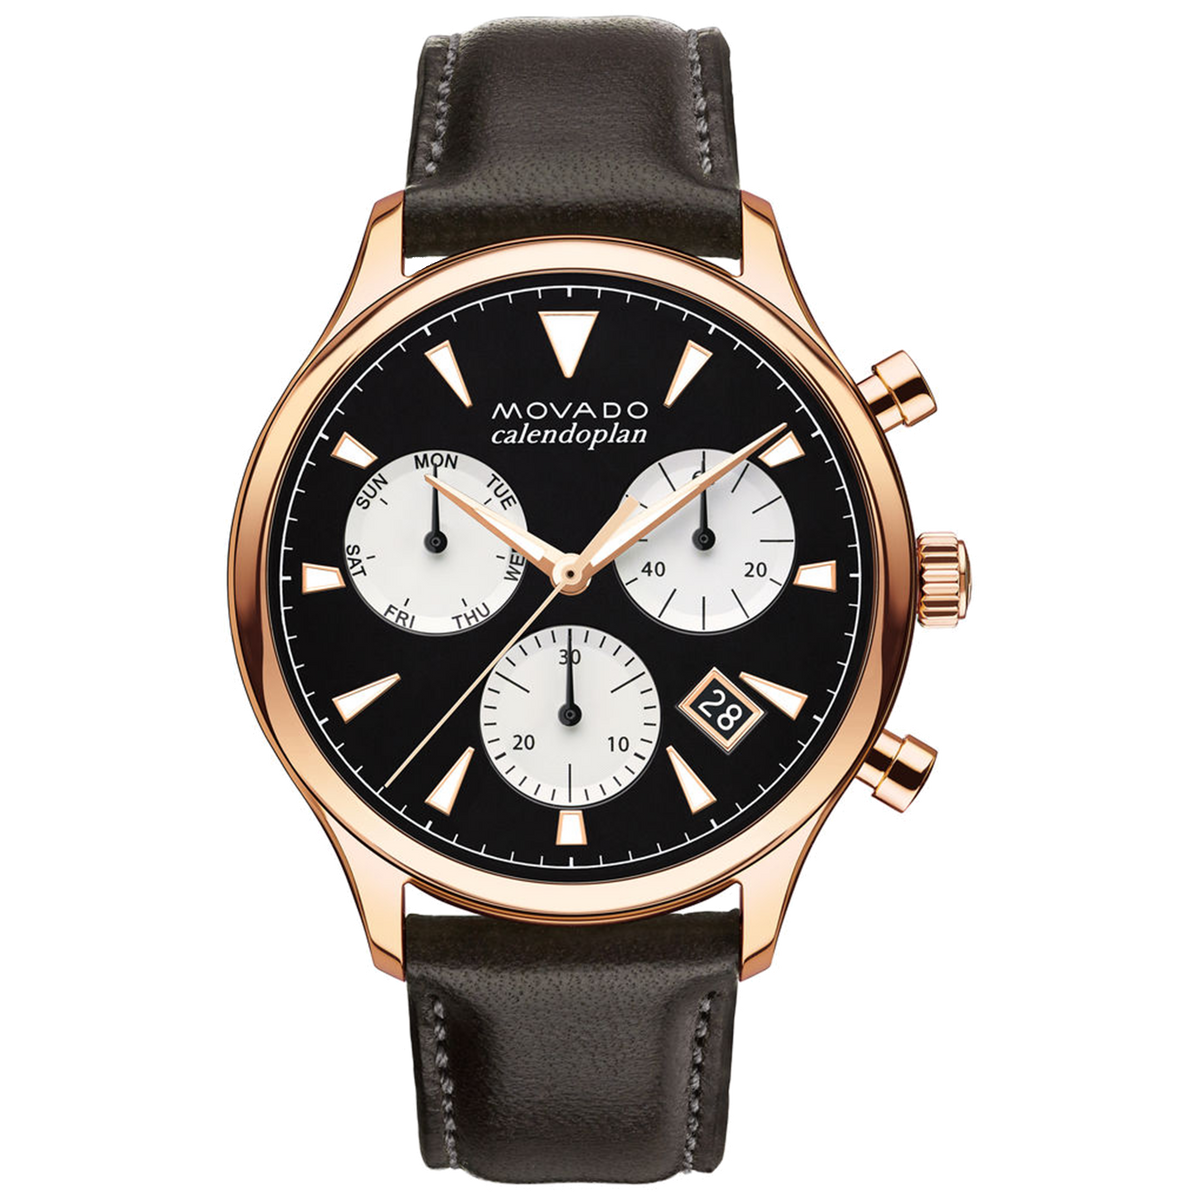 Movado Watch Heritage Series - Calendoplan Chronograph RG/T